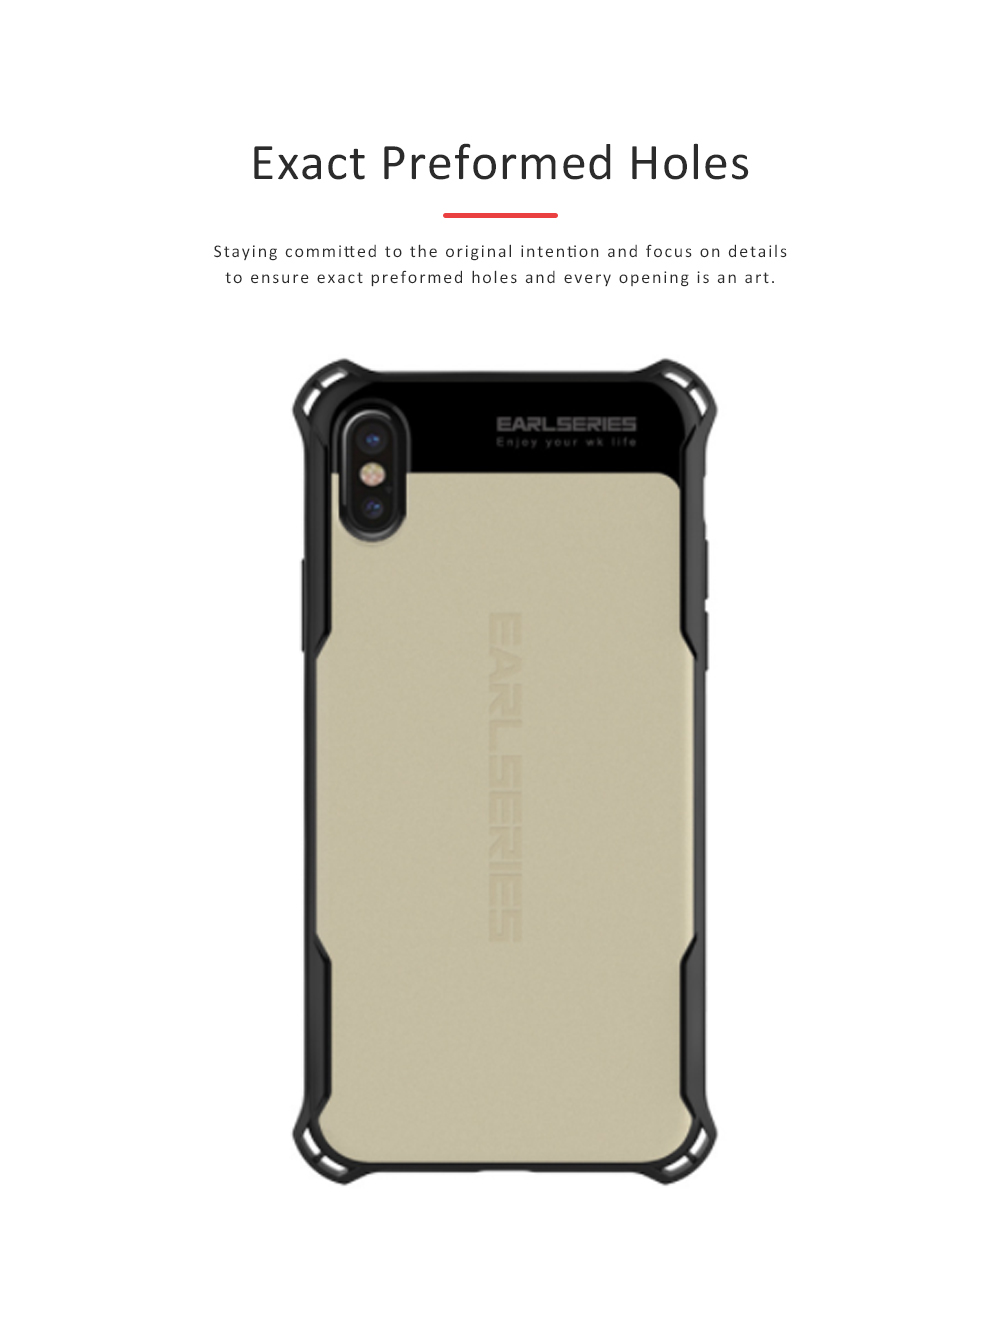 Smart Phone Protective Case for iPhone X, iPhone7, iPhone 8, Simple Style Phone Shell Cover, Anti-impact Anti-scratch Phone Case 4